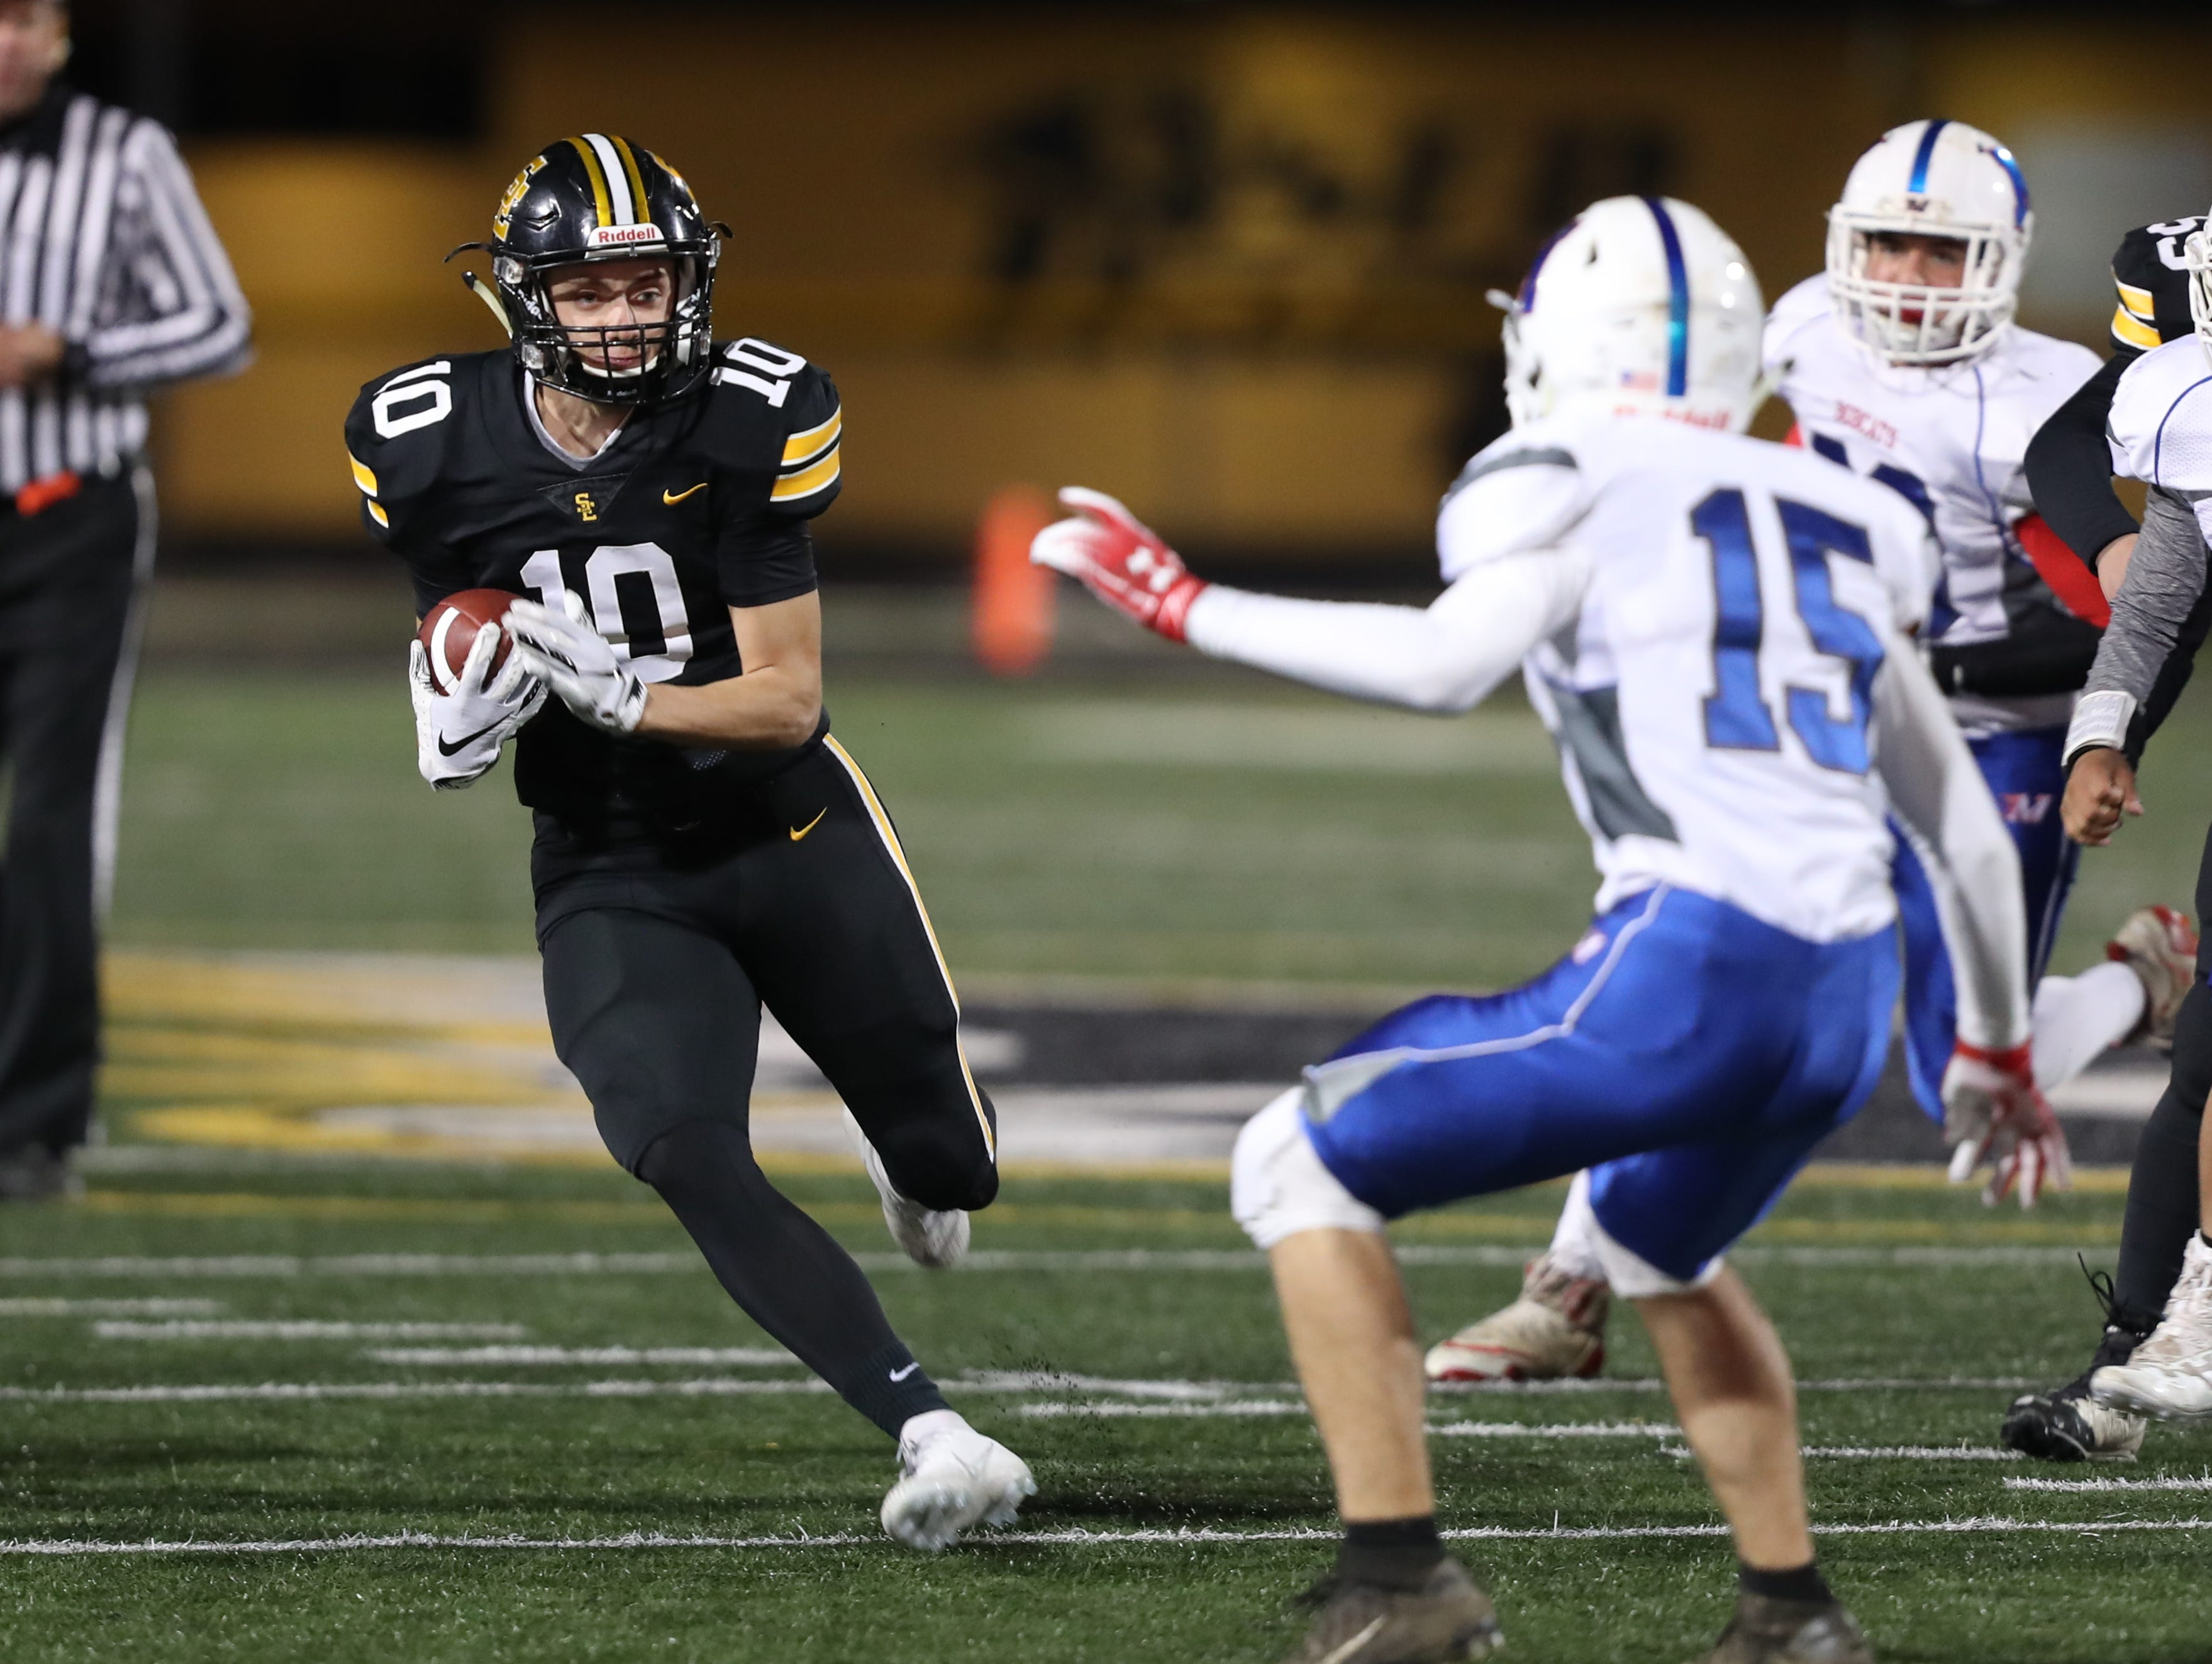 Southeast Polk Rams Mason Fairchild (10) runs for a touchdown against the Marshalltown Bobcats at SE Polk Stadium. The Rams beat the Bobcats 56 to 7.